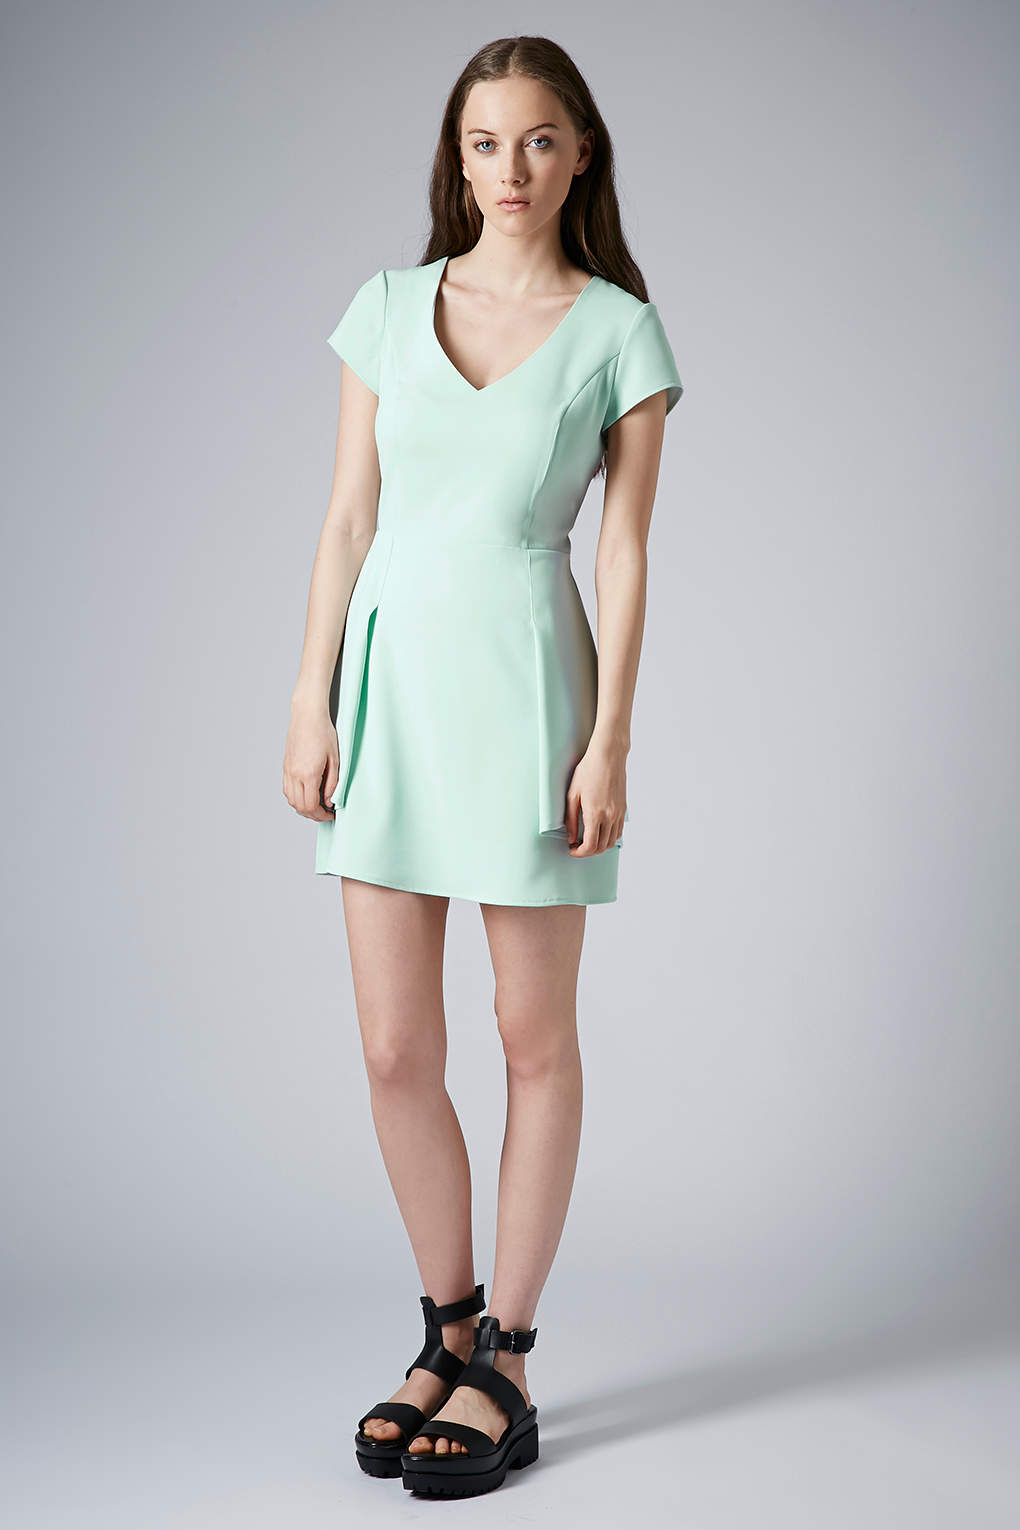 Topshop Peplum Fit And Flare Dress In Mint Green - Lyst-4031